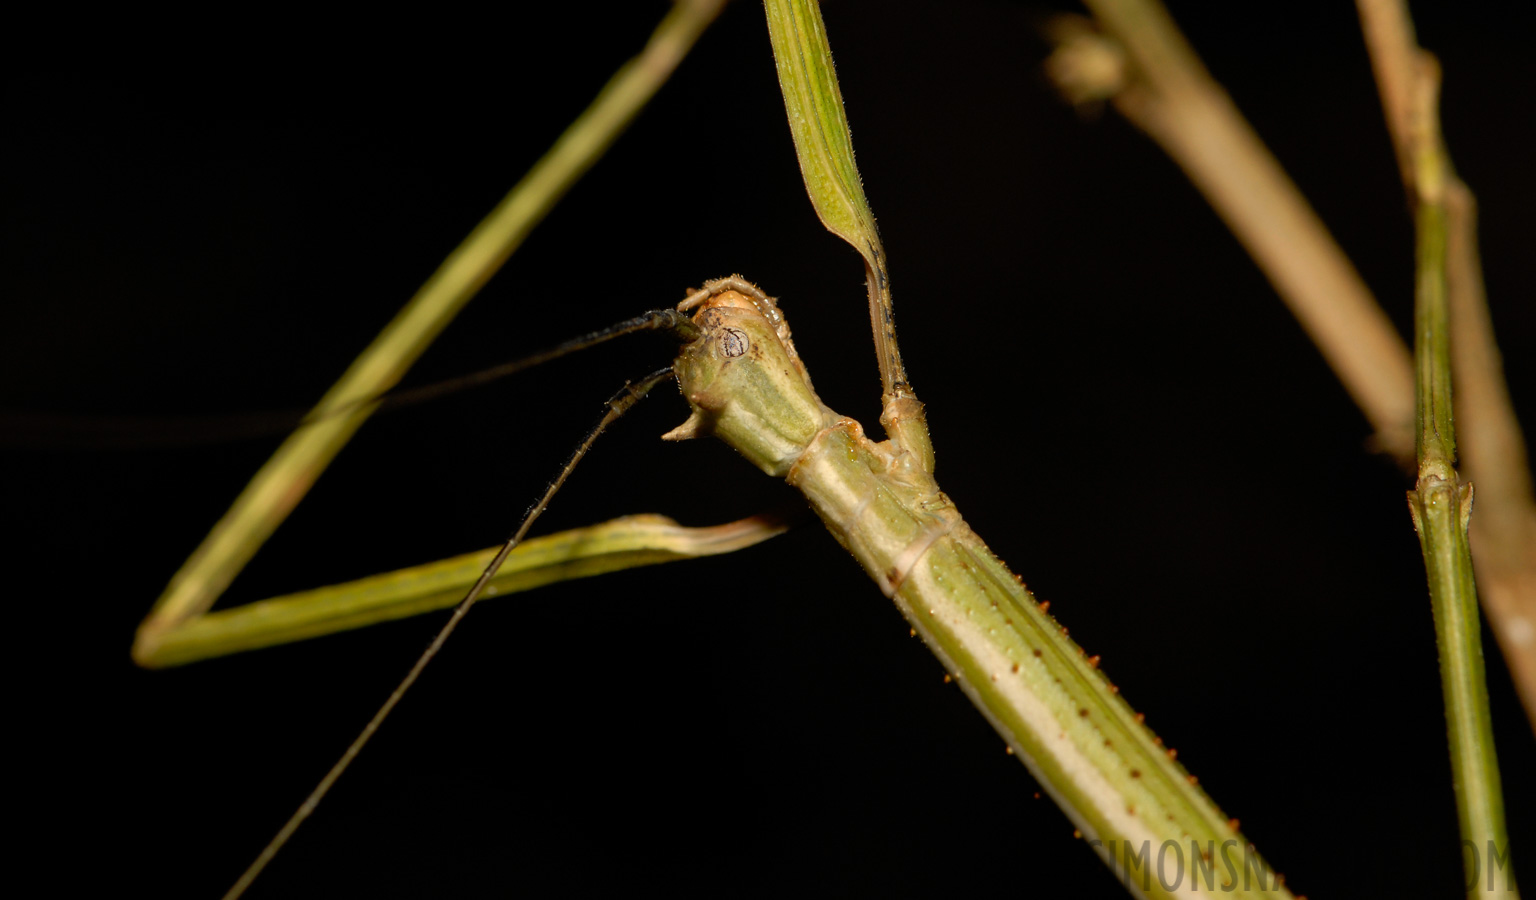 Phasmatodea sp [105 mm, 1/60 sec at f / 11, ISO 200]